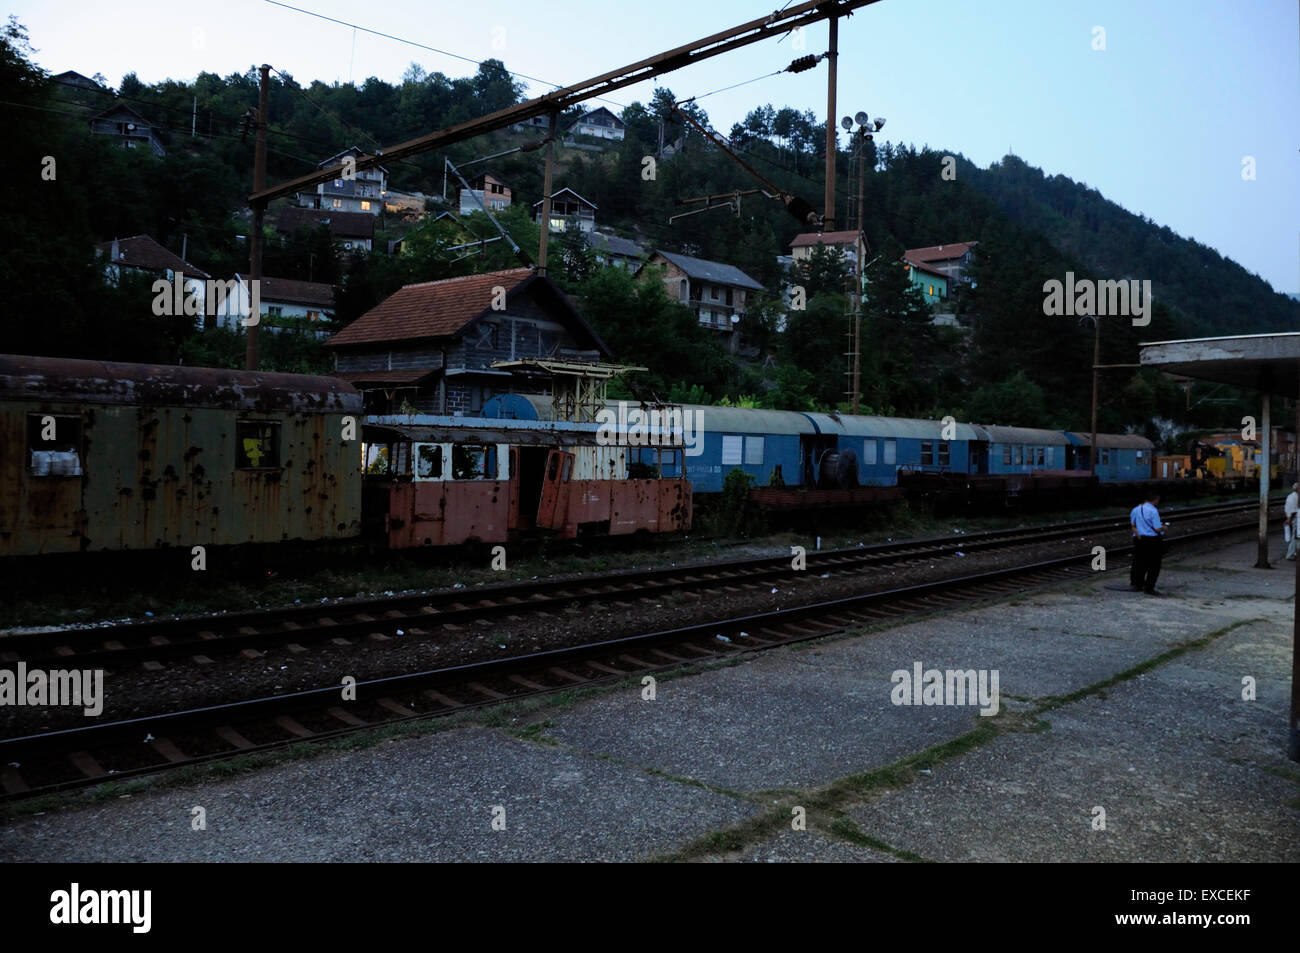 Damaged train on the railway station in small town in Bosnia. - Stock Image